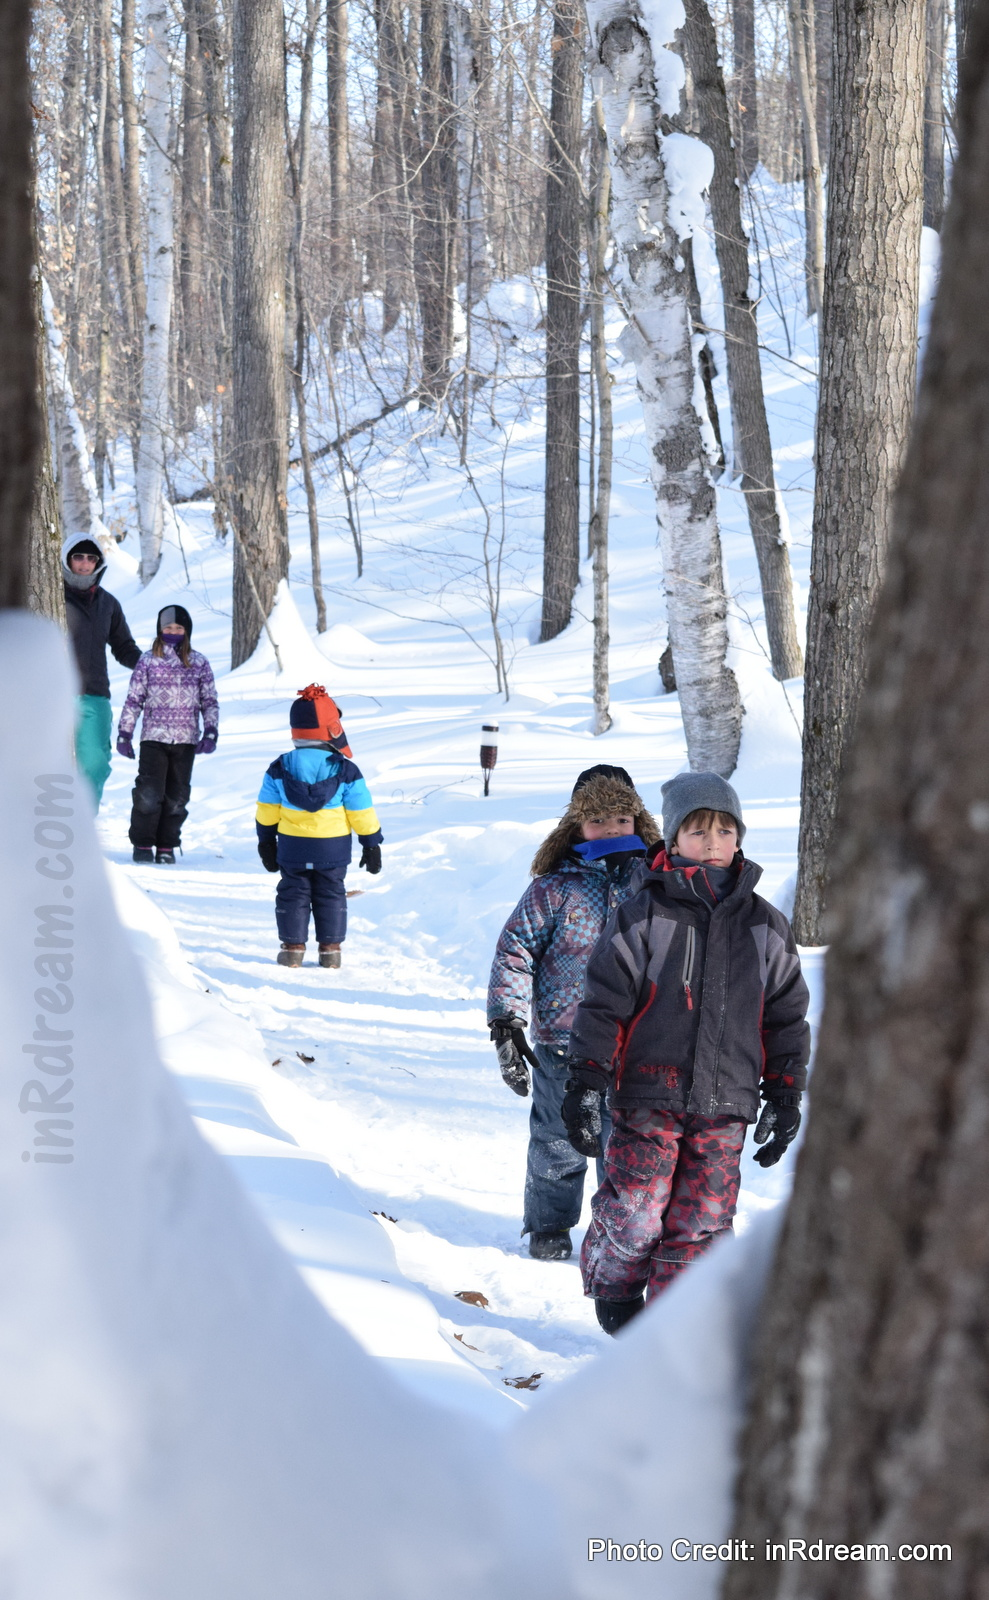 Best of our Canadian Winter Family Day Mini Vacation in Muskoka #NikonMOMents